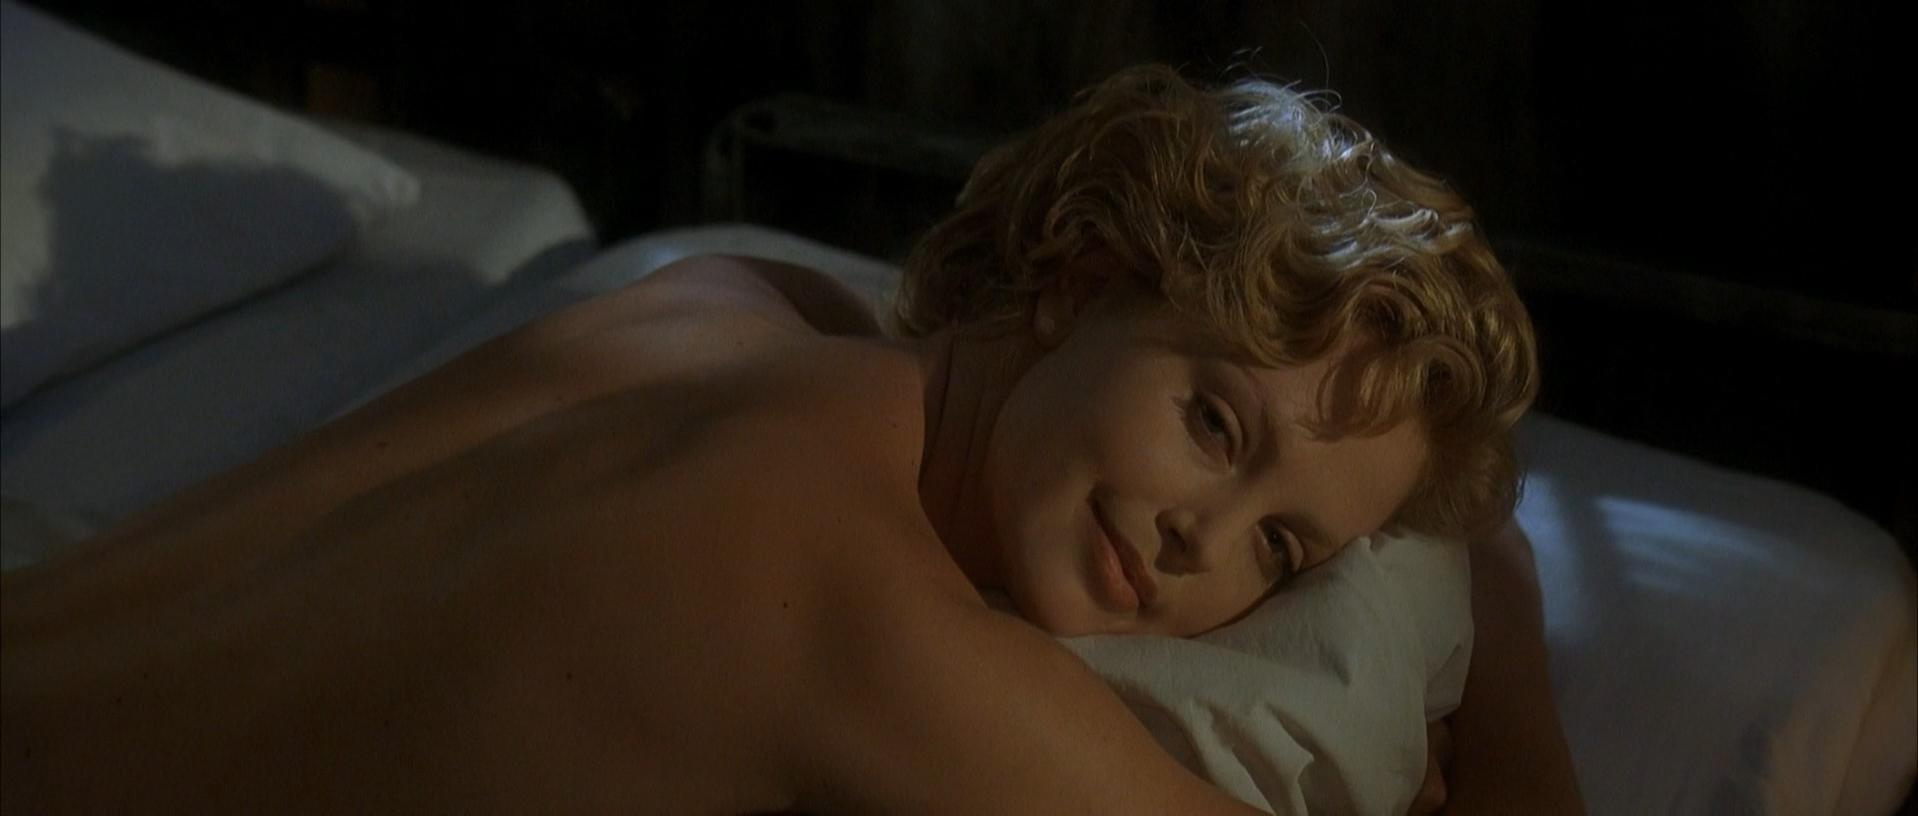 Charlize Theron nude - The Cider House Rules (1999)